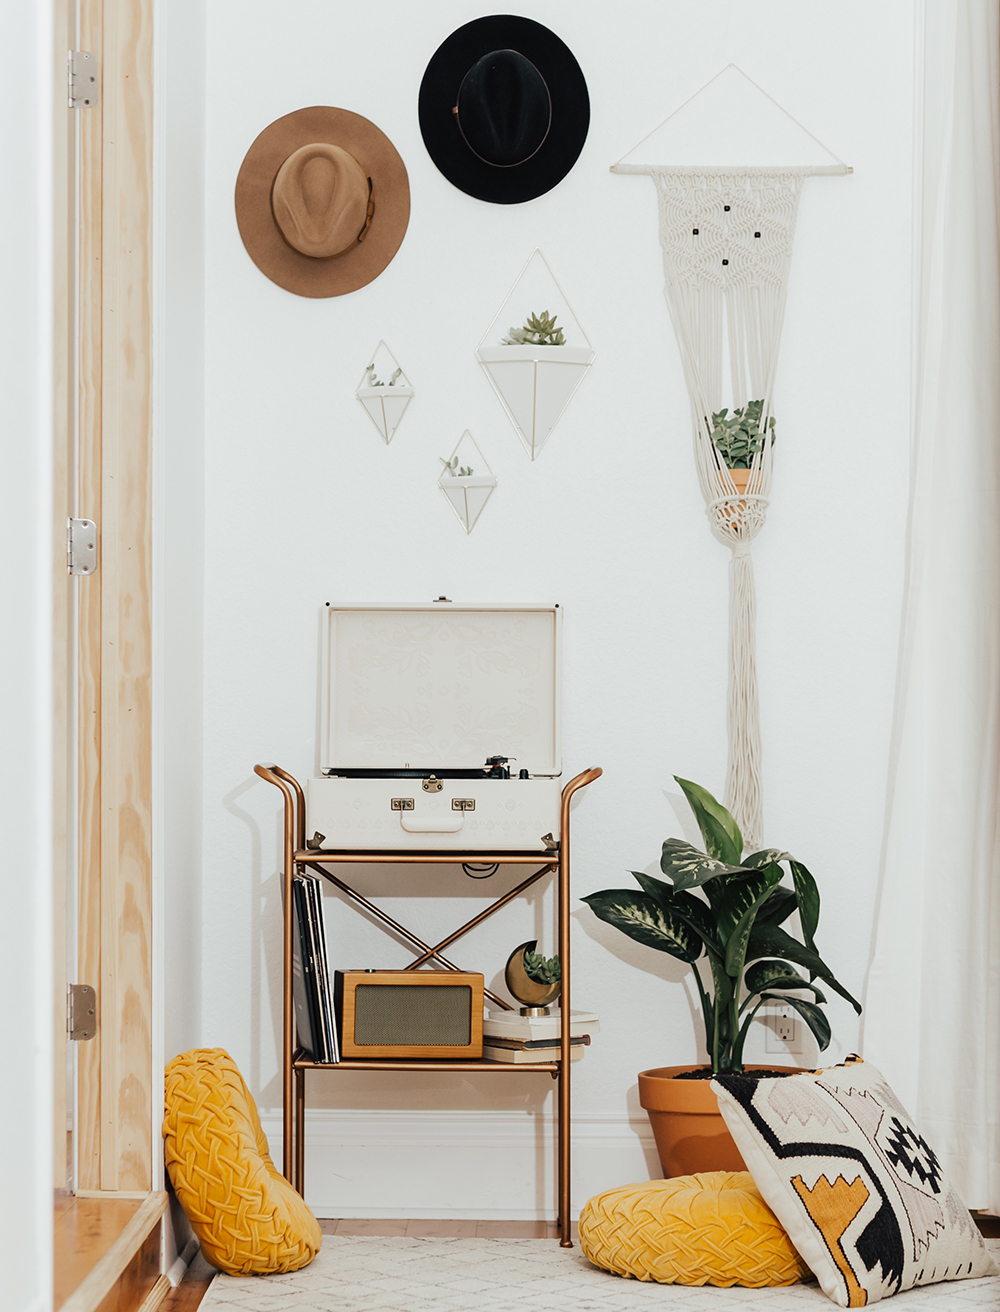 livvyland-blog-olivia-watson-austin-texas-fashion-blogger-urban-outfitters-record-player-nook-room-setup-holder-interior-boho-style-succulent-hangers-2